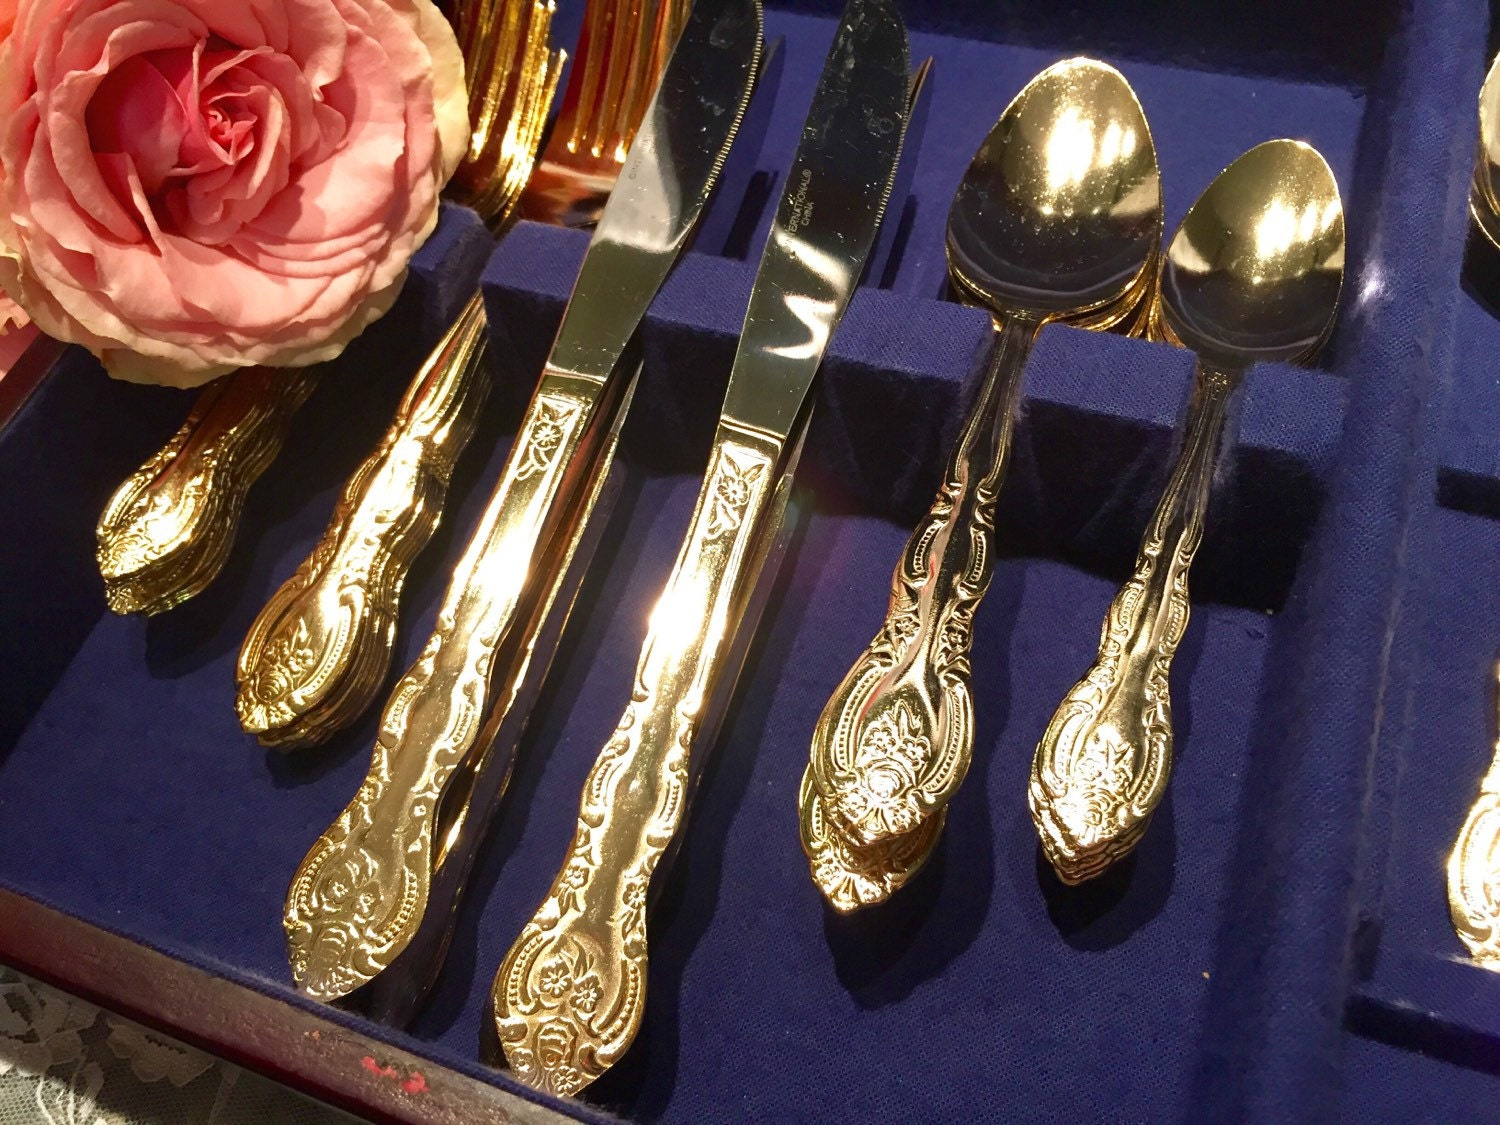 antique gold rose flatware set service for 8 with bonus. Black Bedroom Furniture Sets. Home Design Ideas